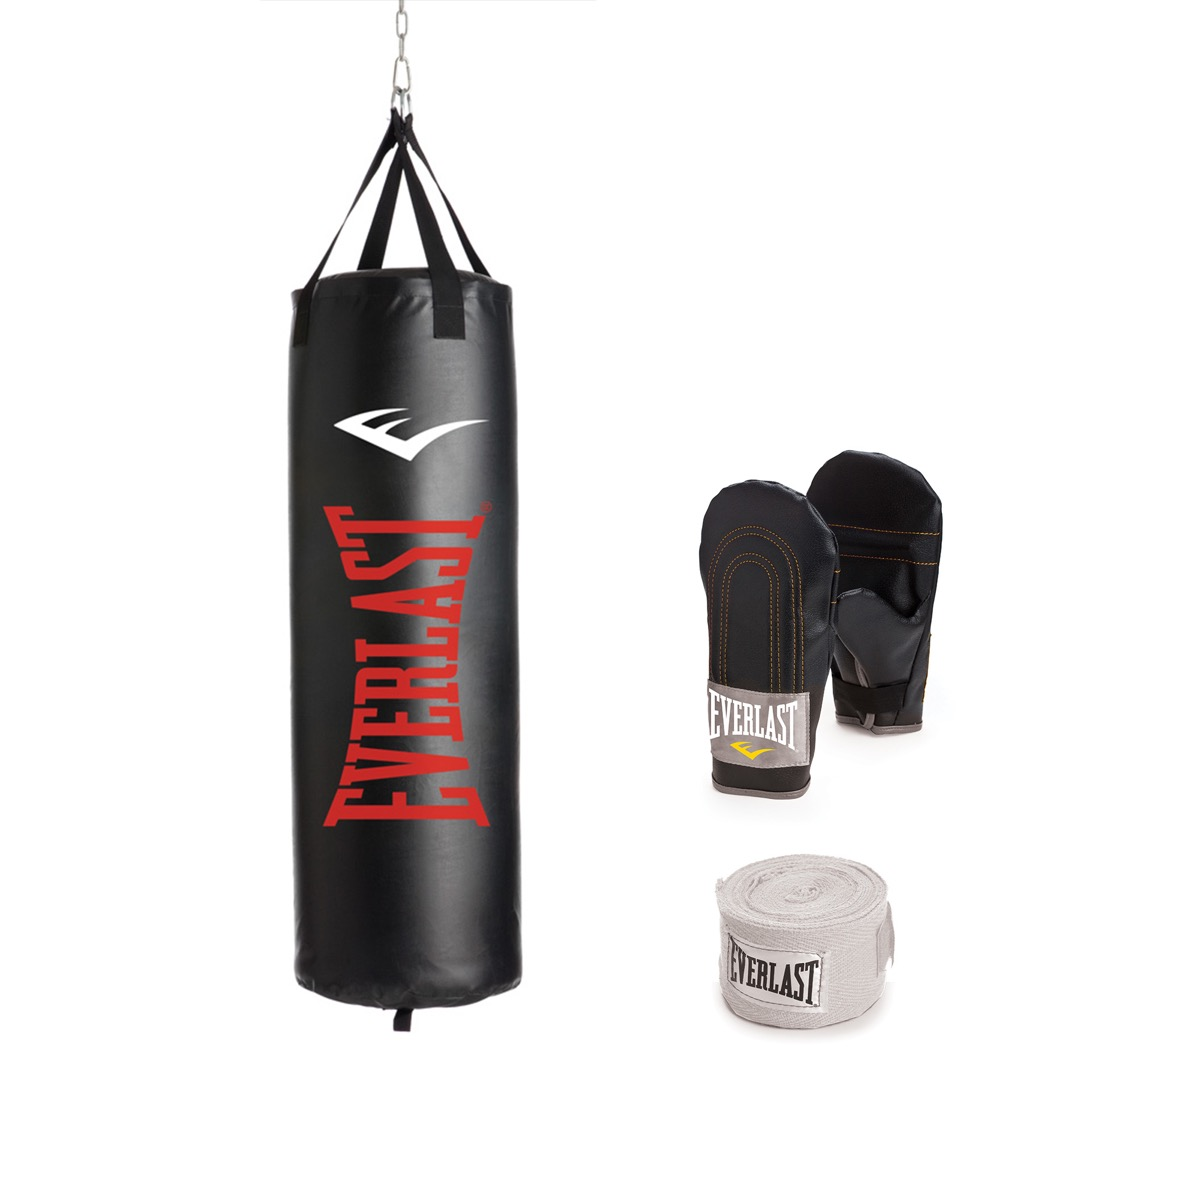 heavy bag kit with two black boxing gloves and white strap